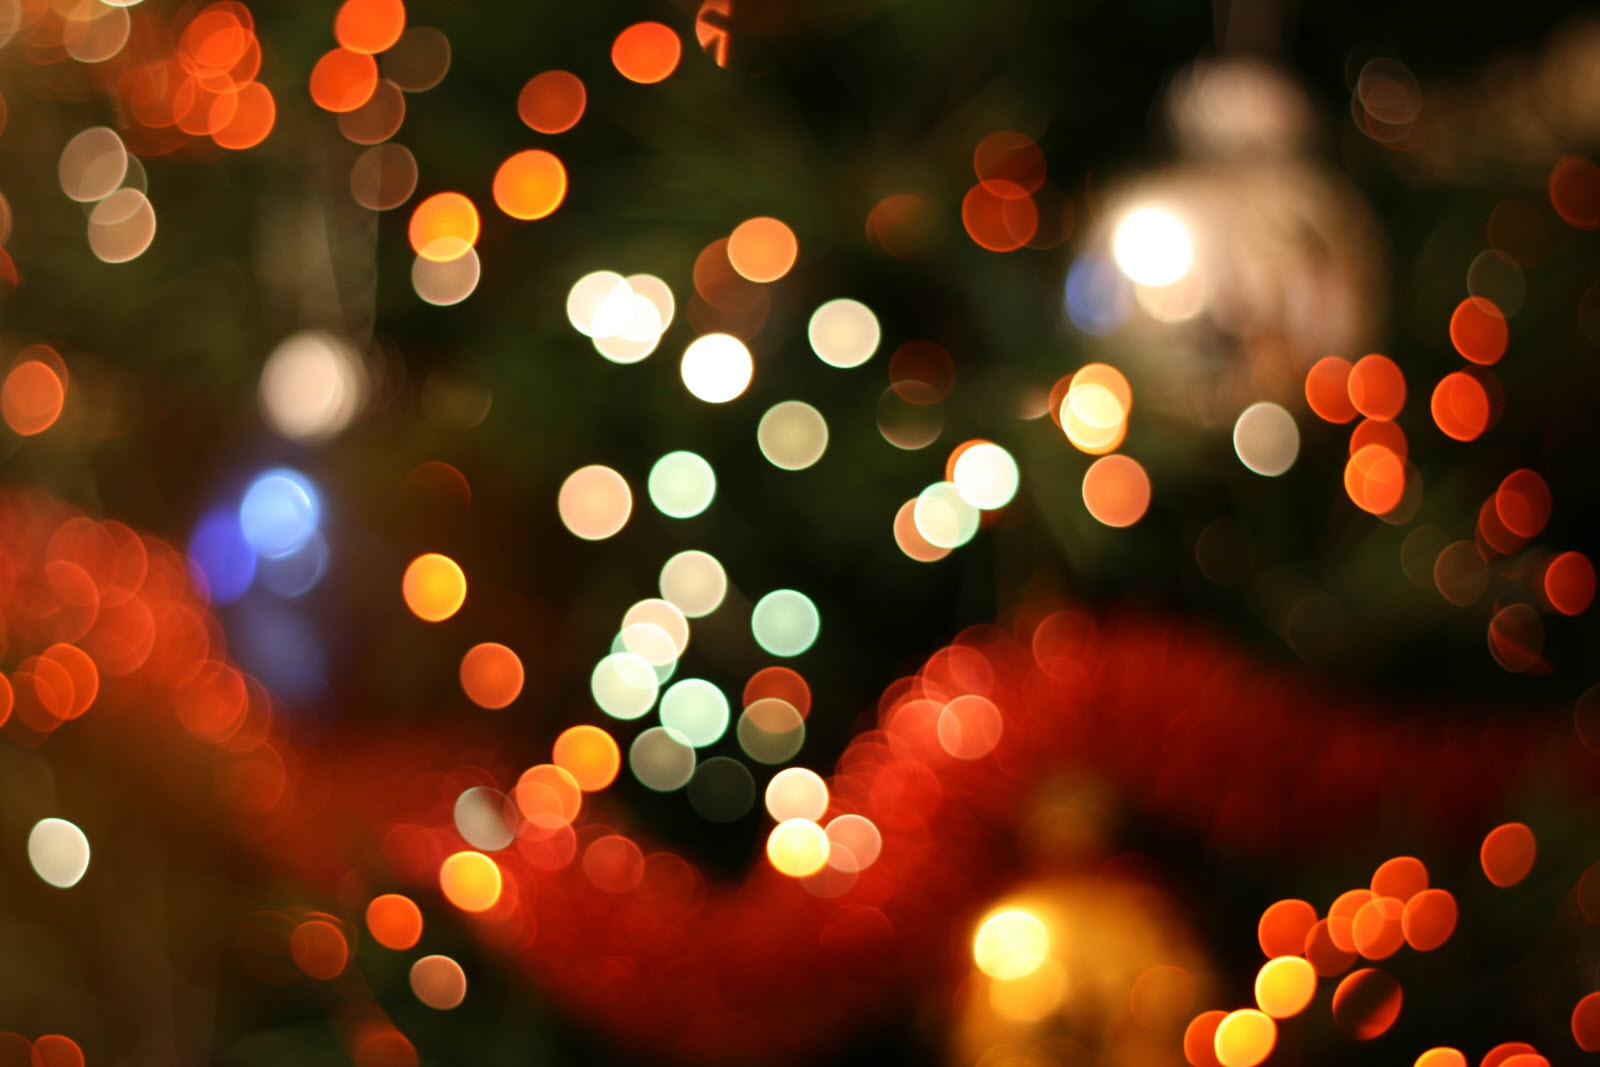 Christmas, Lights, Blurry